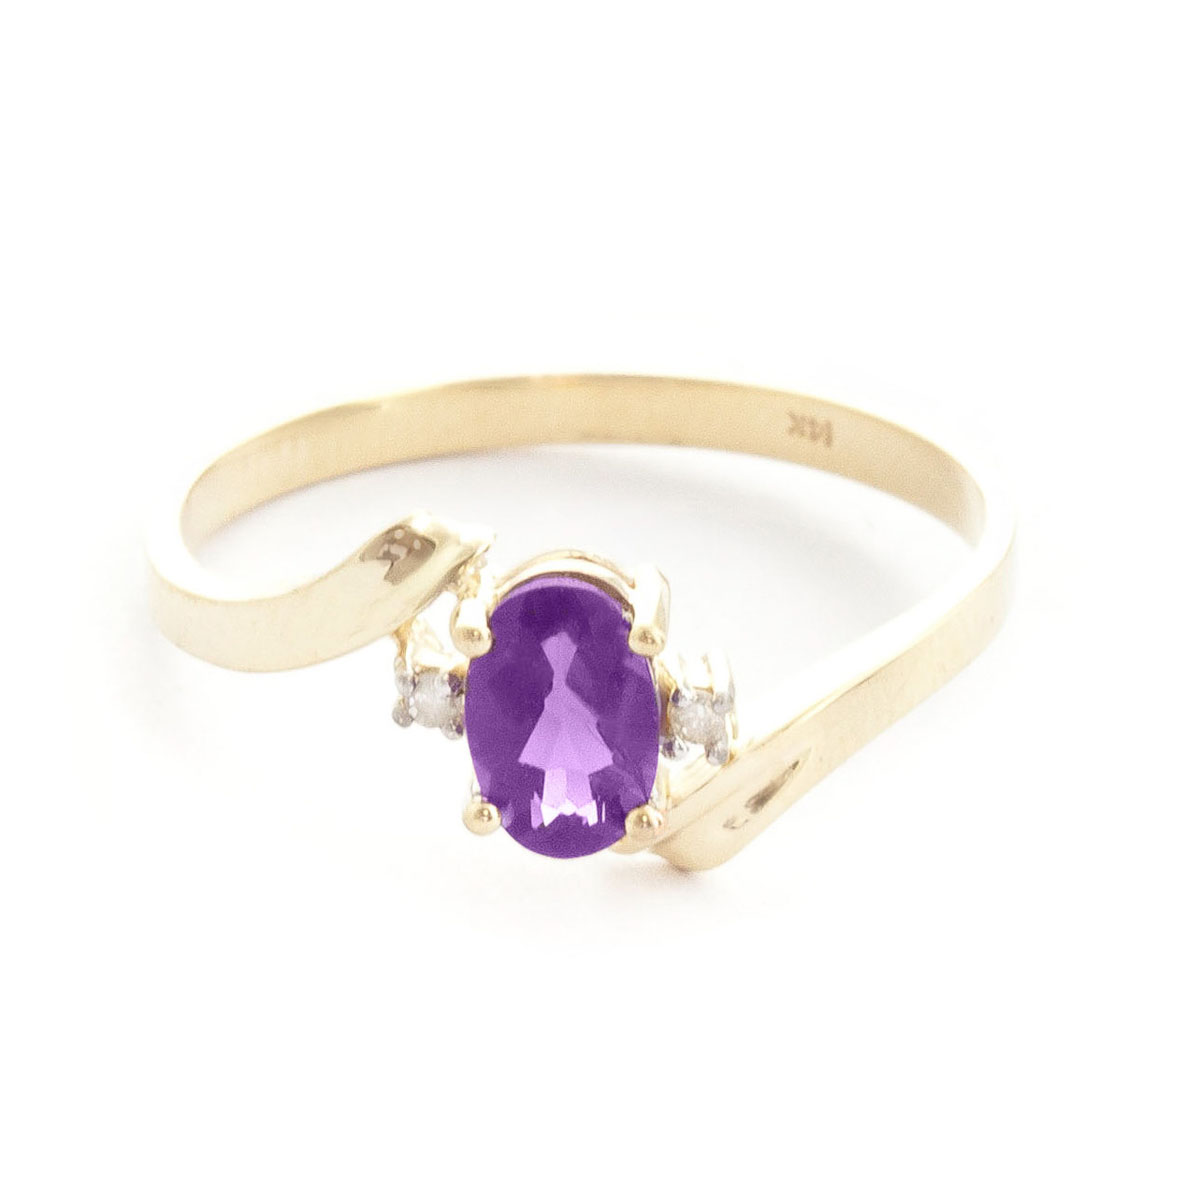 Amethyst & Diamond Embrace Ring in 18ct Gold